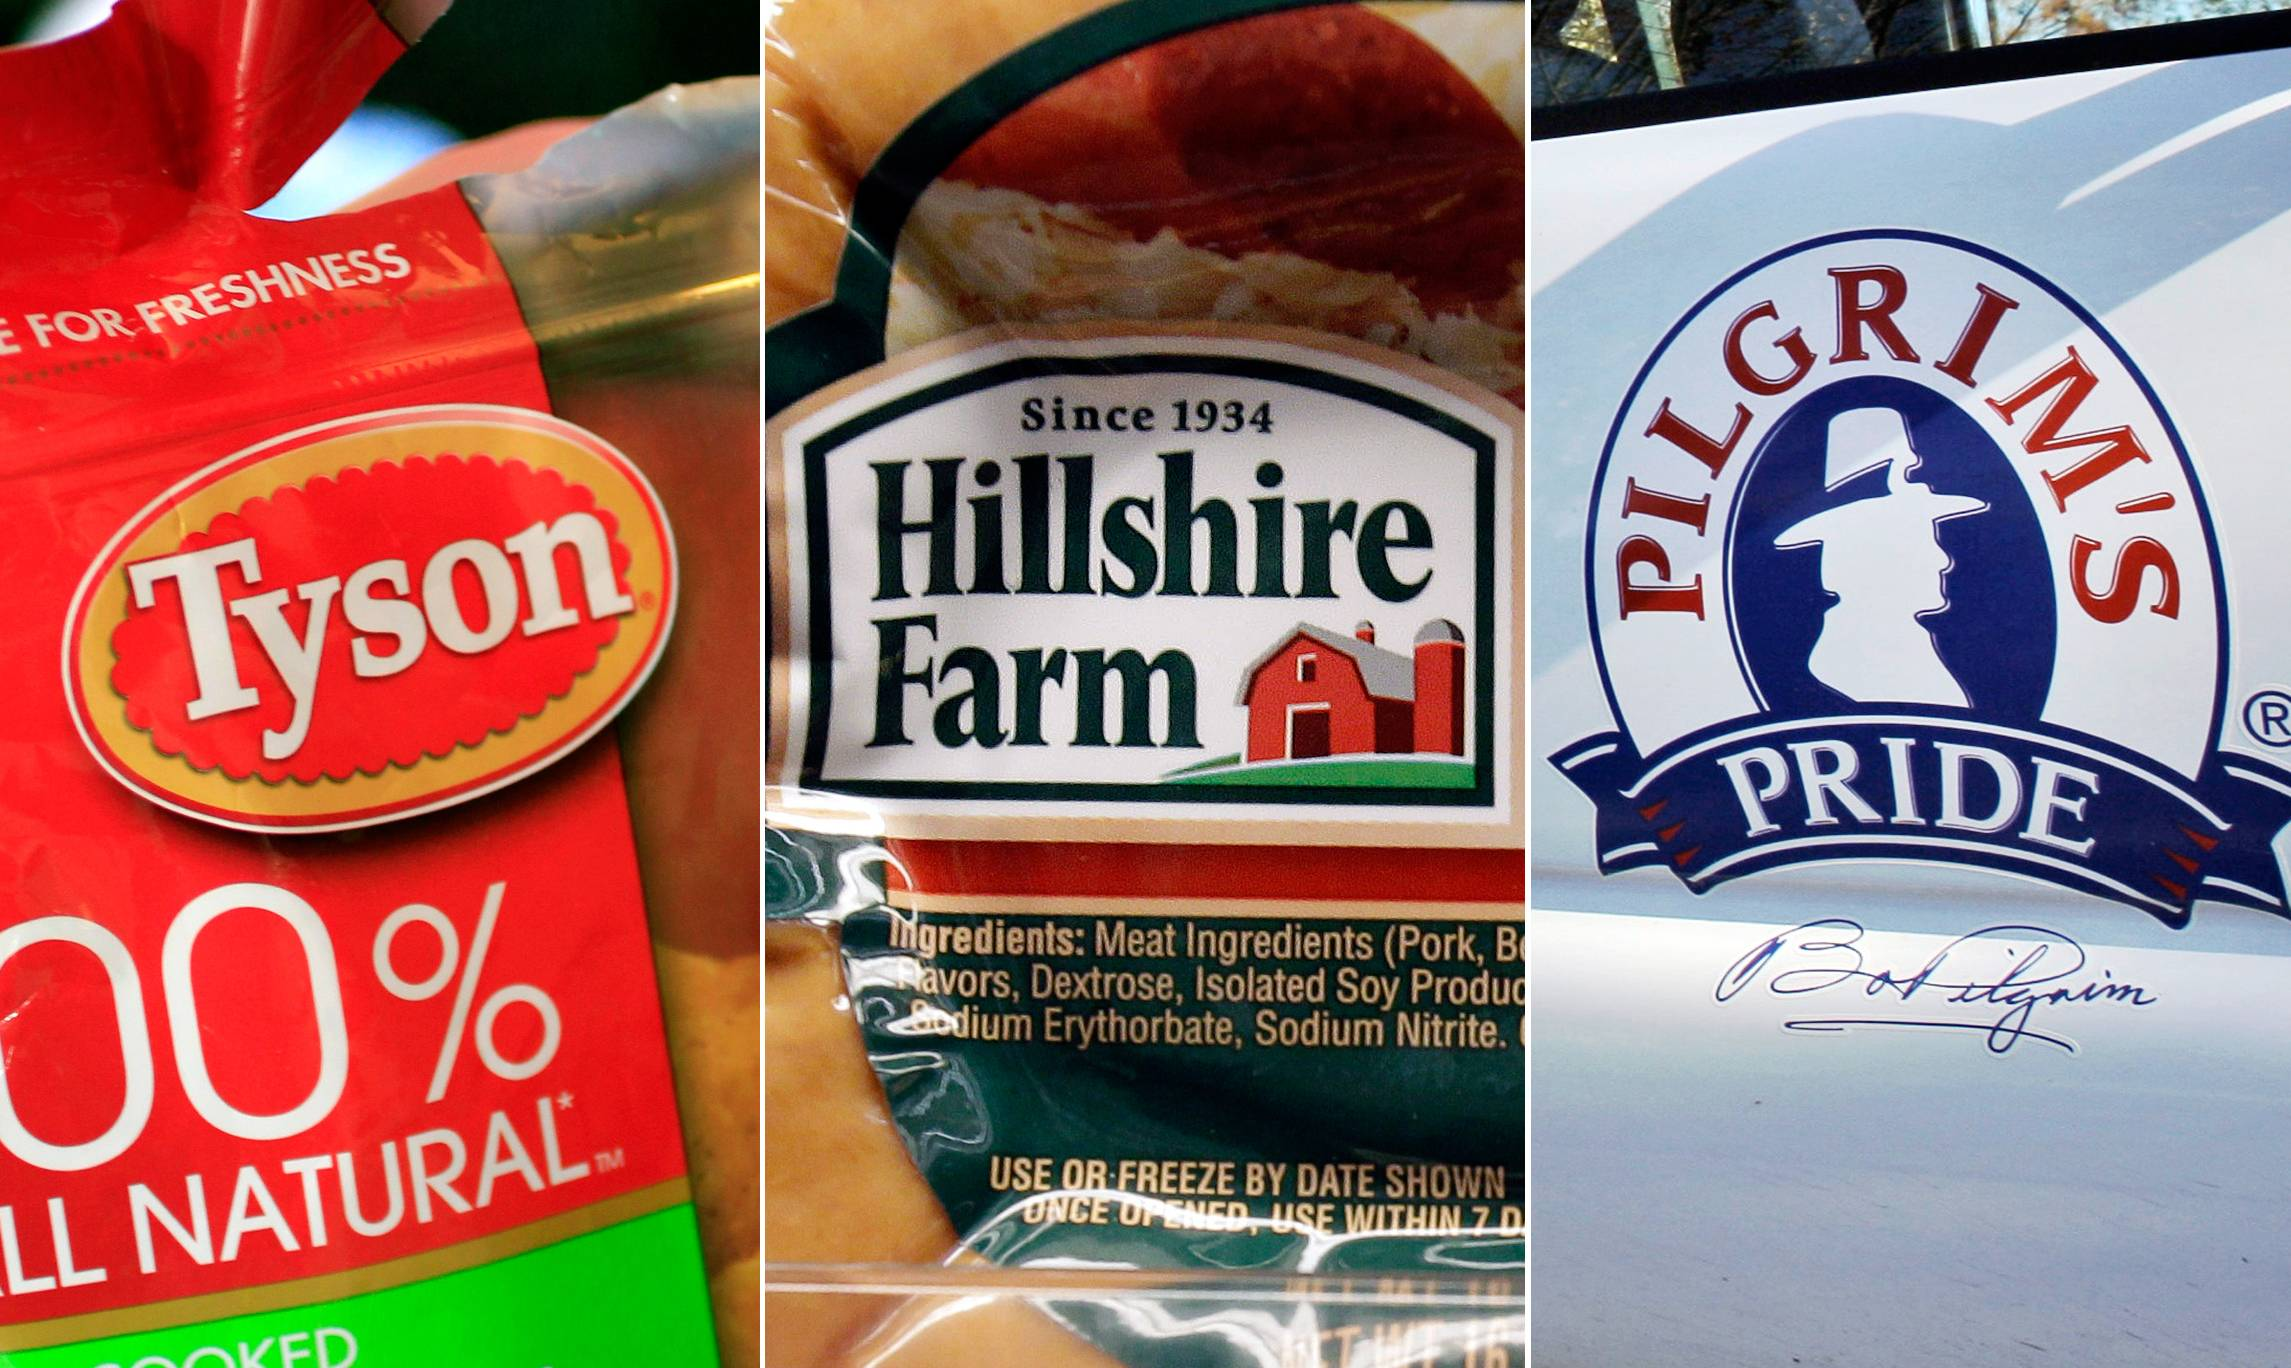 Among Chicago-based Hillshire Brands' products and food lines are Tyson Chicken Nuggets, left, Hillshire Farm sausage, center, and Pilgrim's Pride.